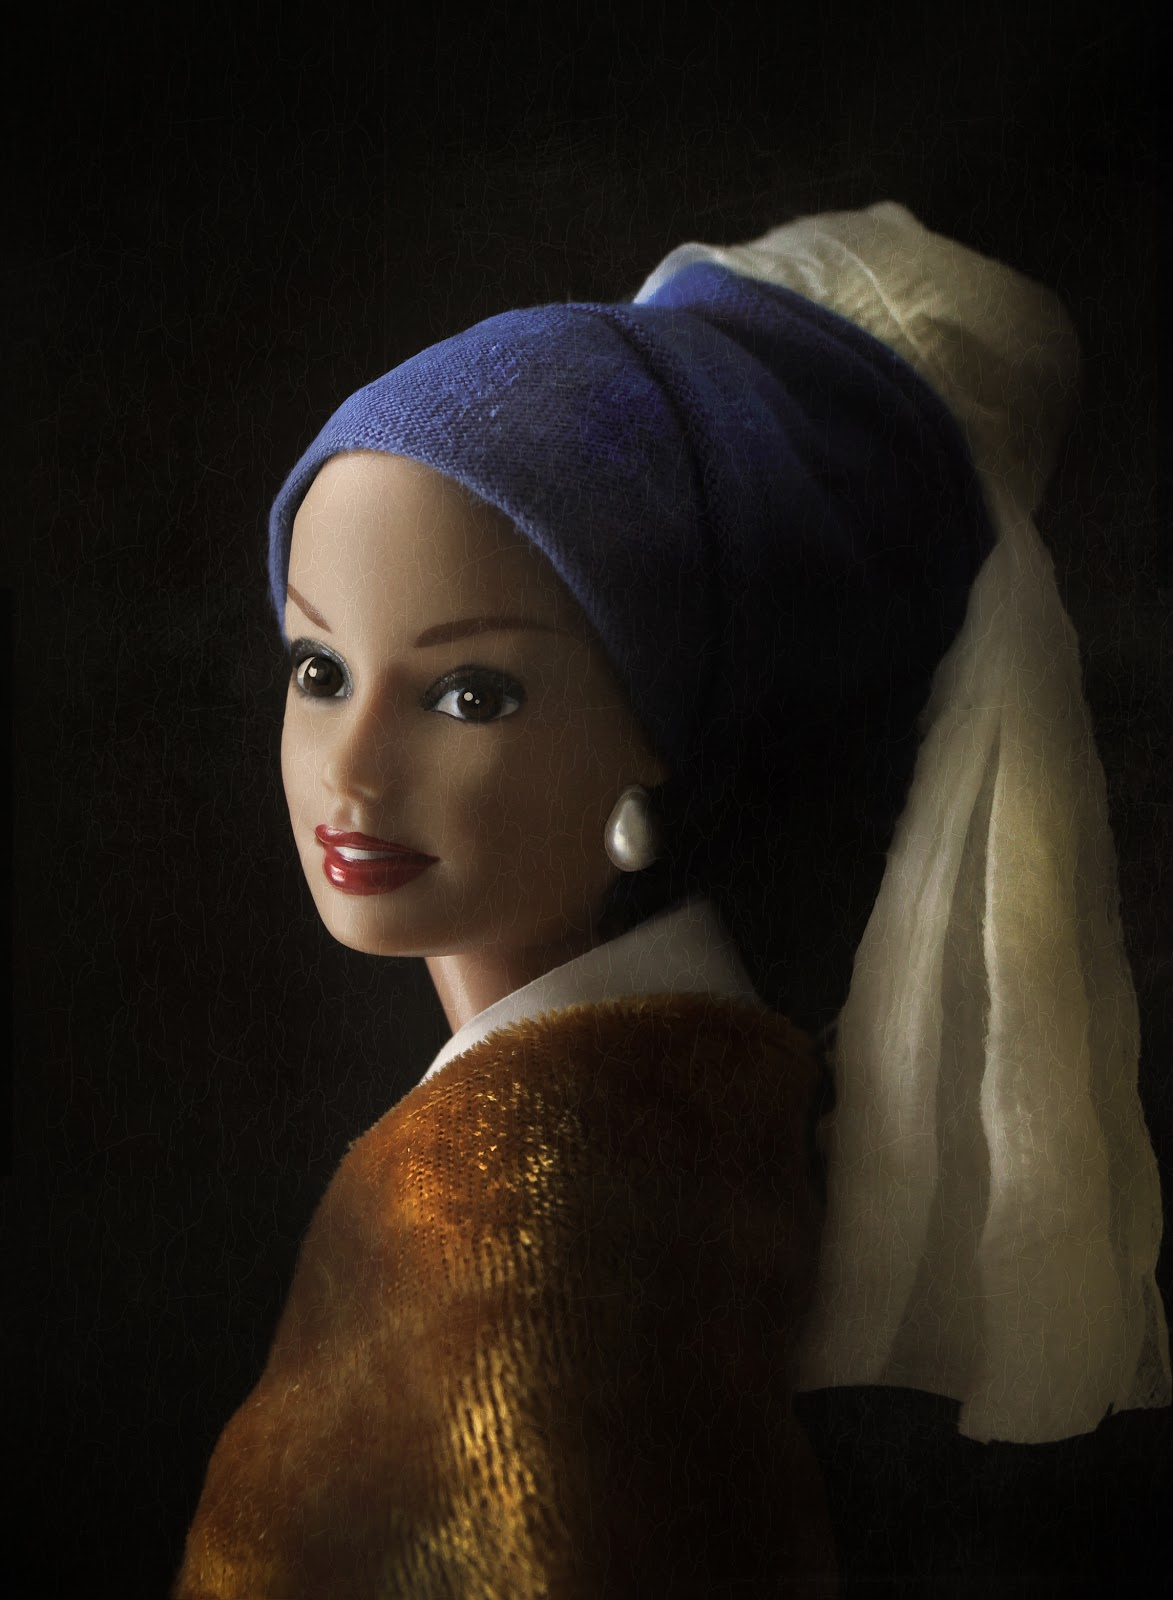 Alberti's Window: Barbie in Fine Art